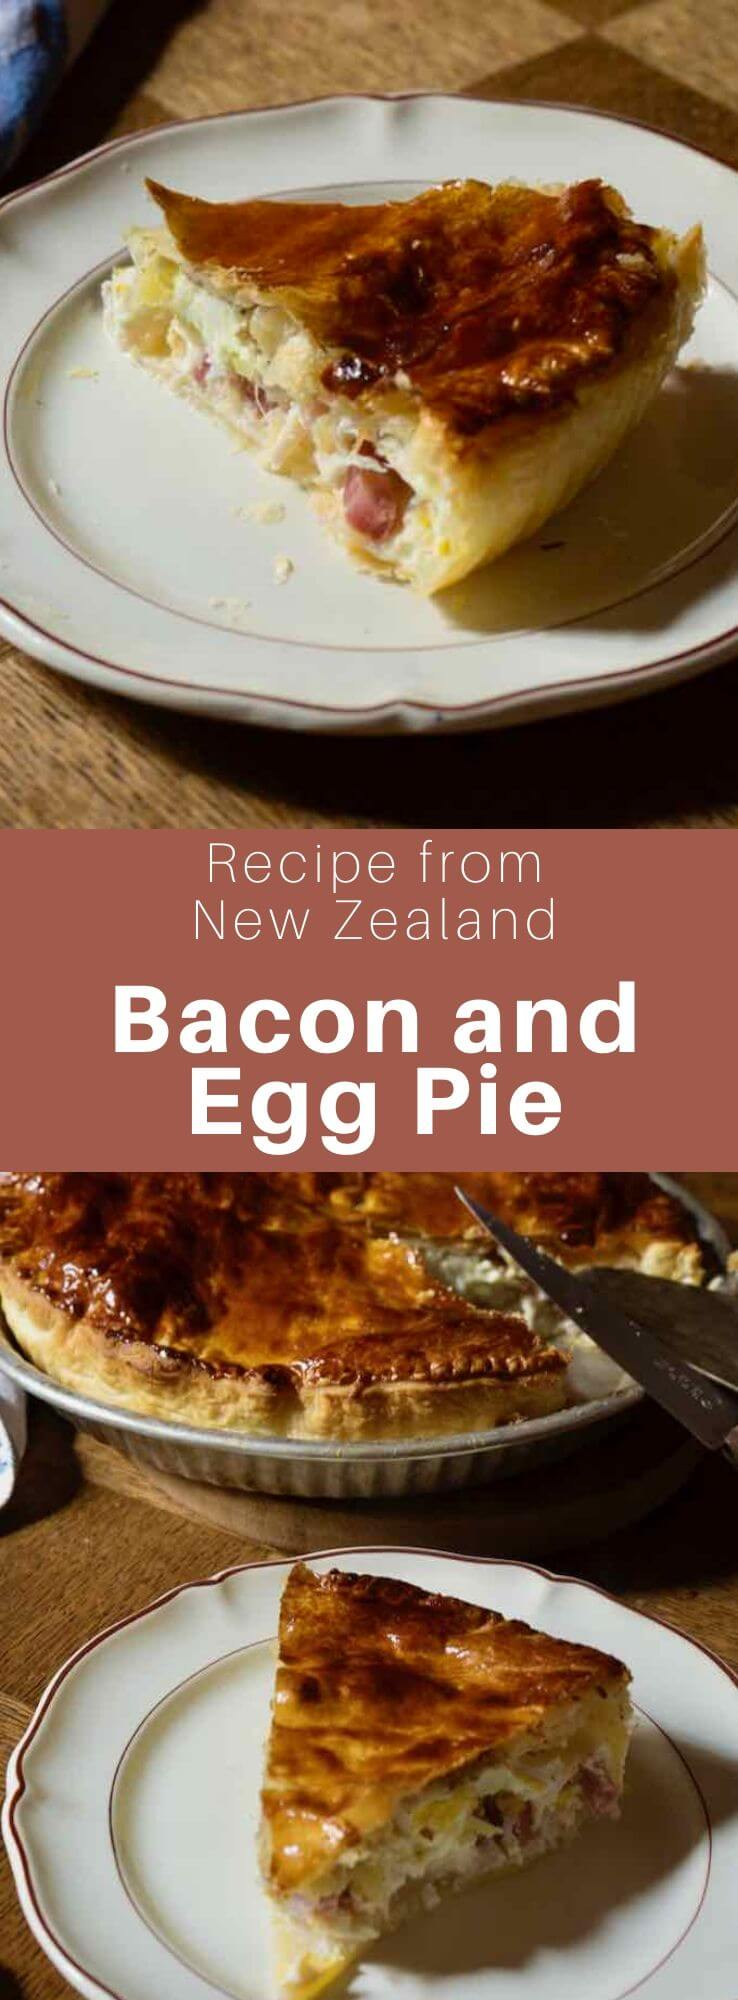 Bacon and egg pie is a traditional New Zealand savory pie made with a puff pastry crust containing mainly bacon and eggs. #NewZealand #WorldCuisine #196flavors